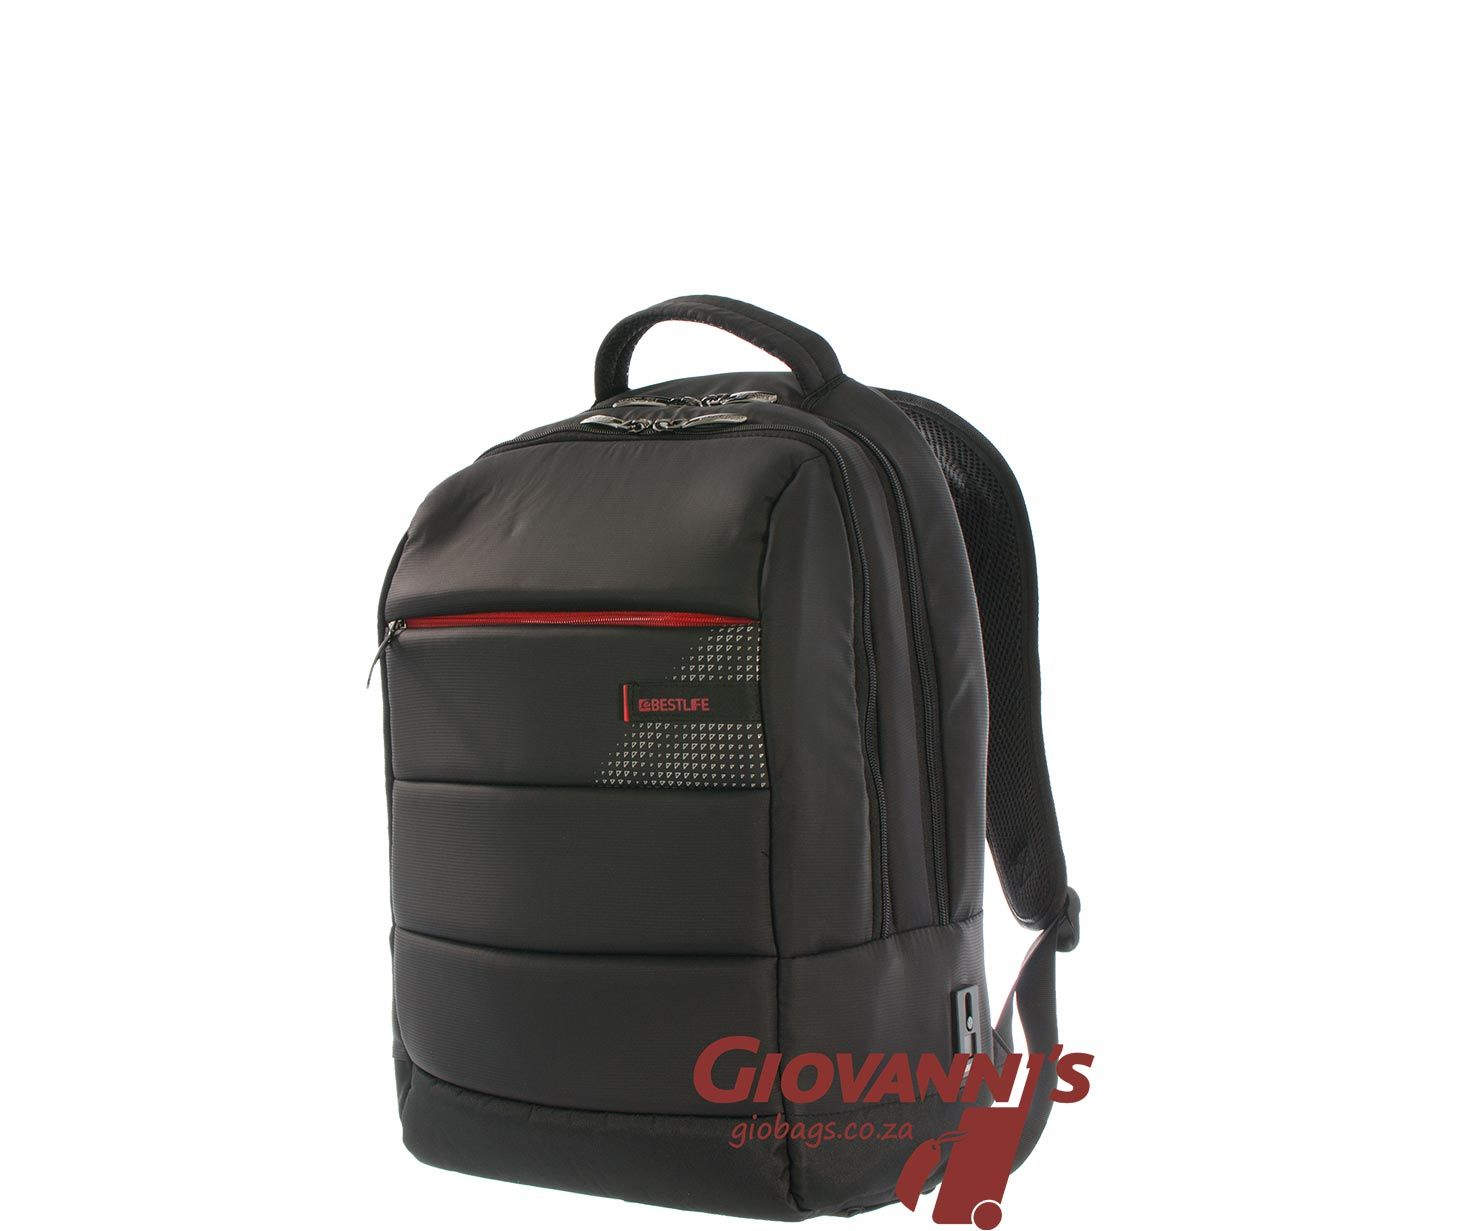 Giobags Bestlife 15.6 Inch Laptop Back Pack